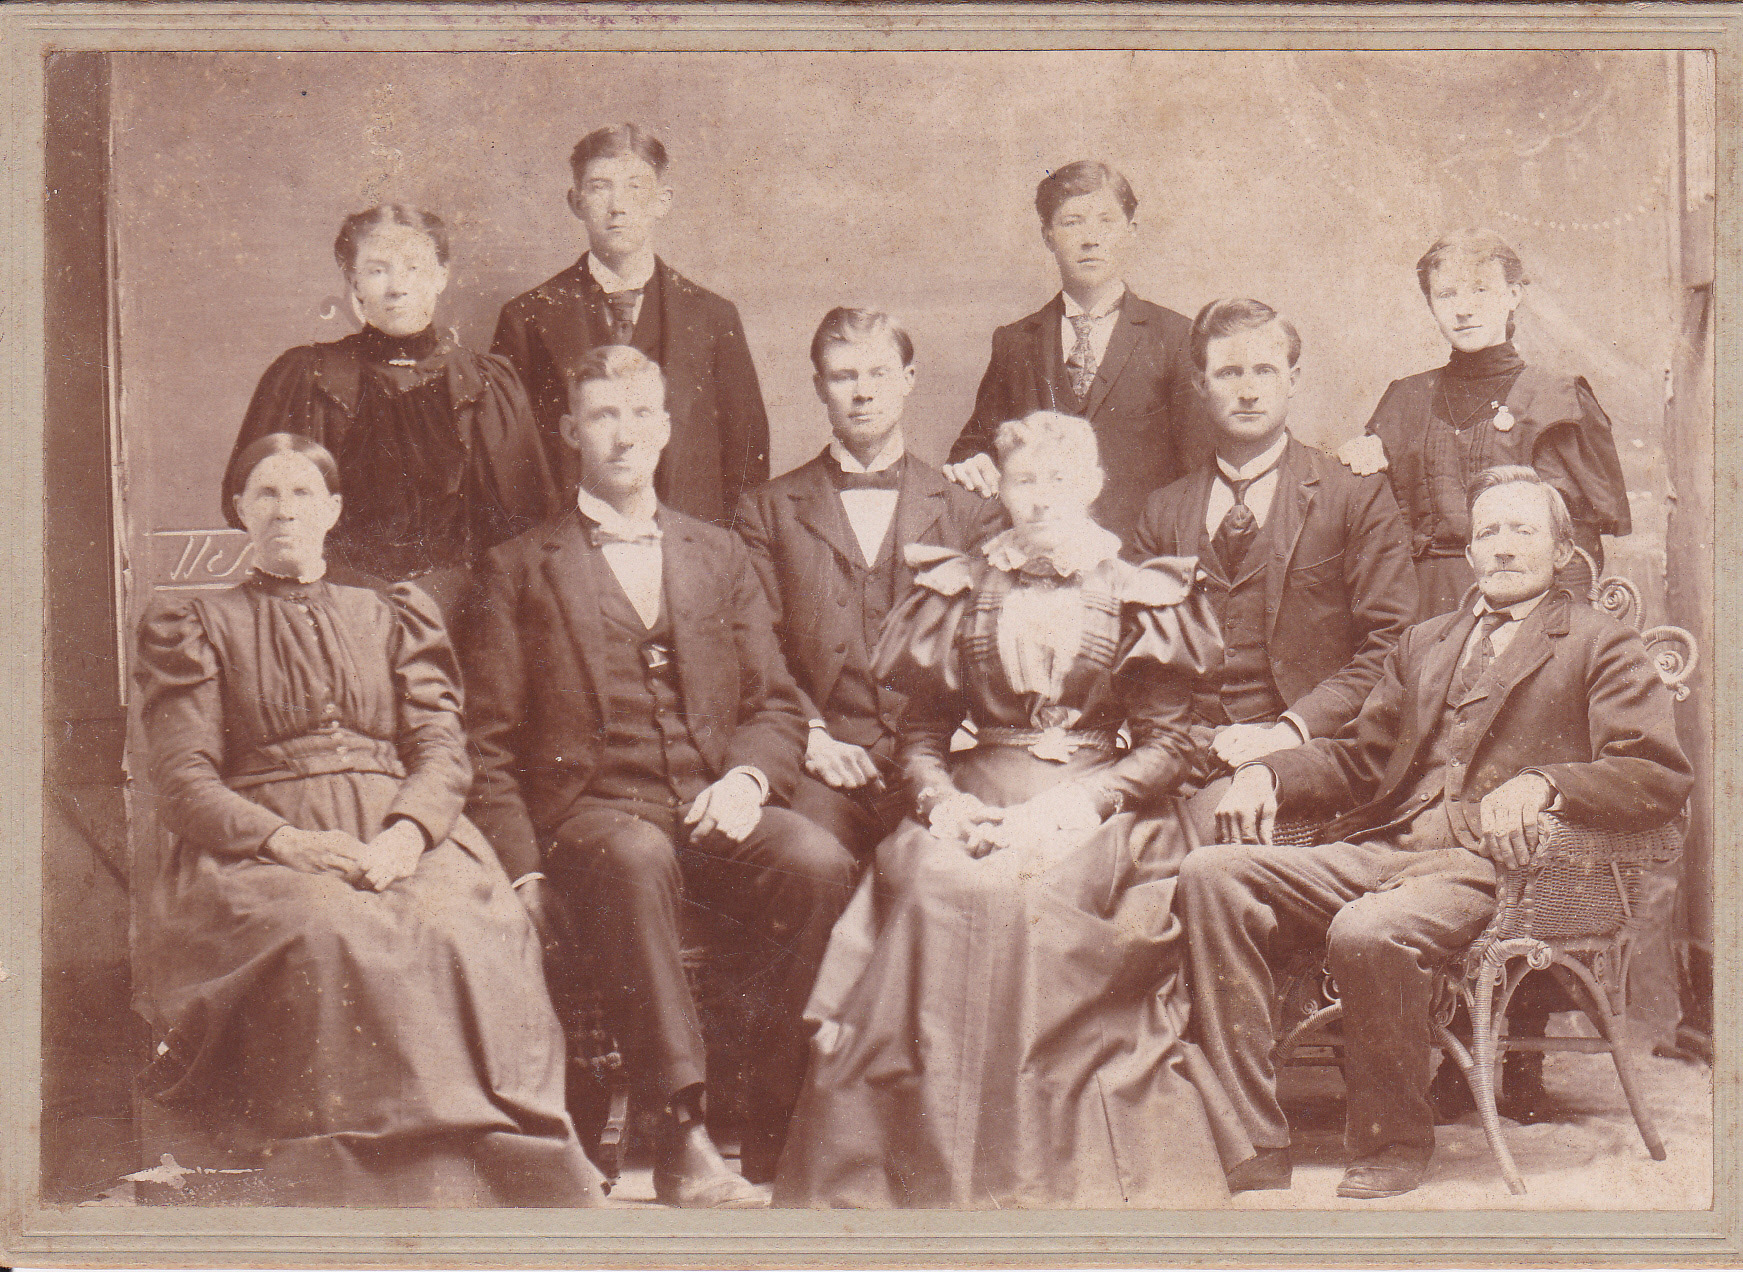 August and Florentine Schuckman Family.